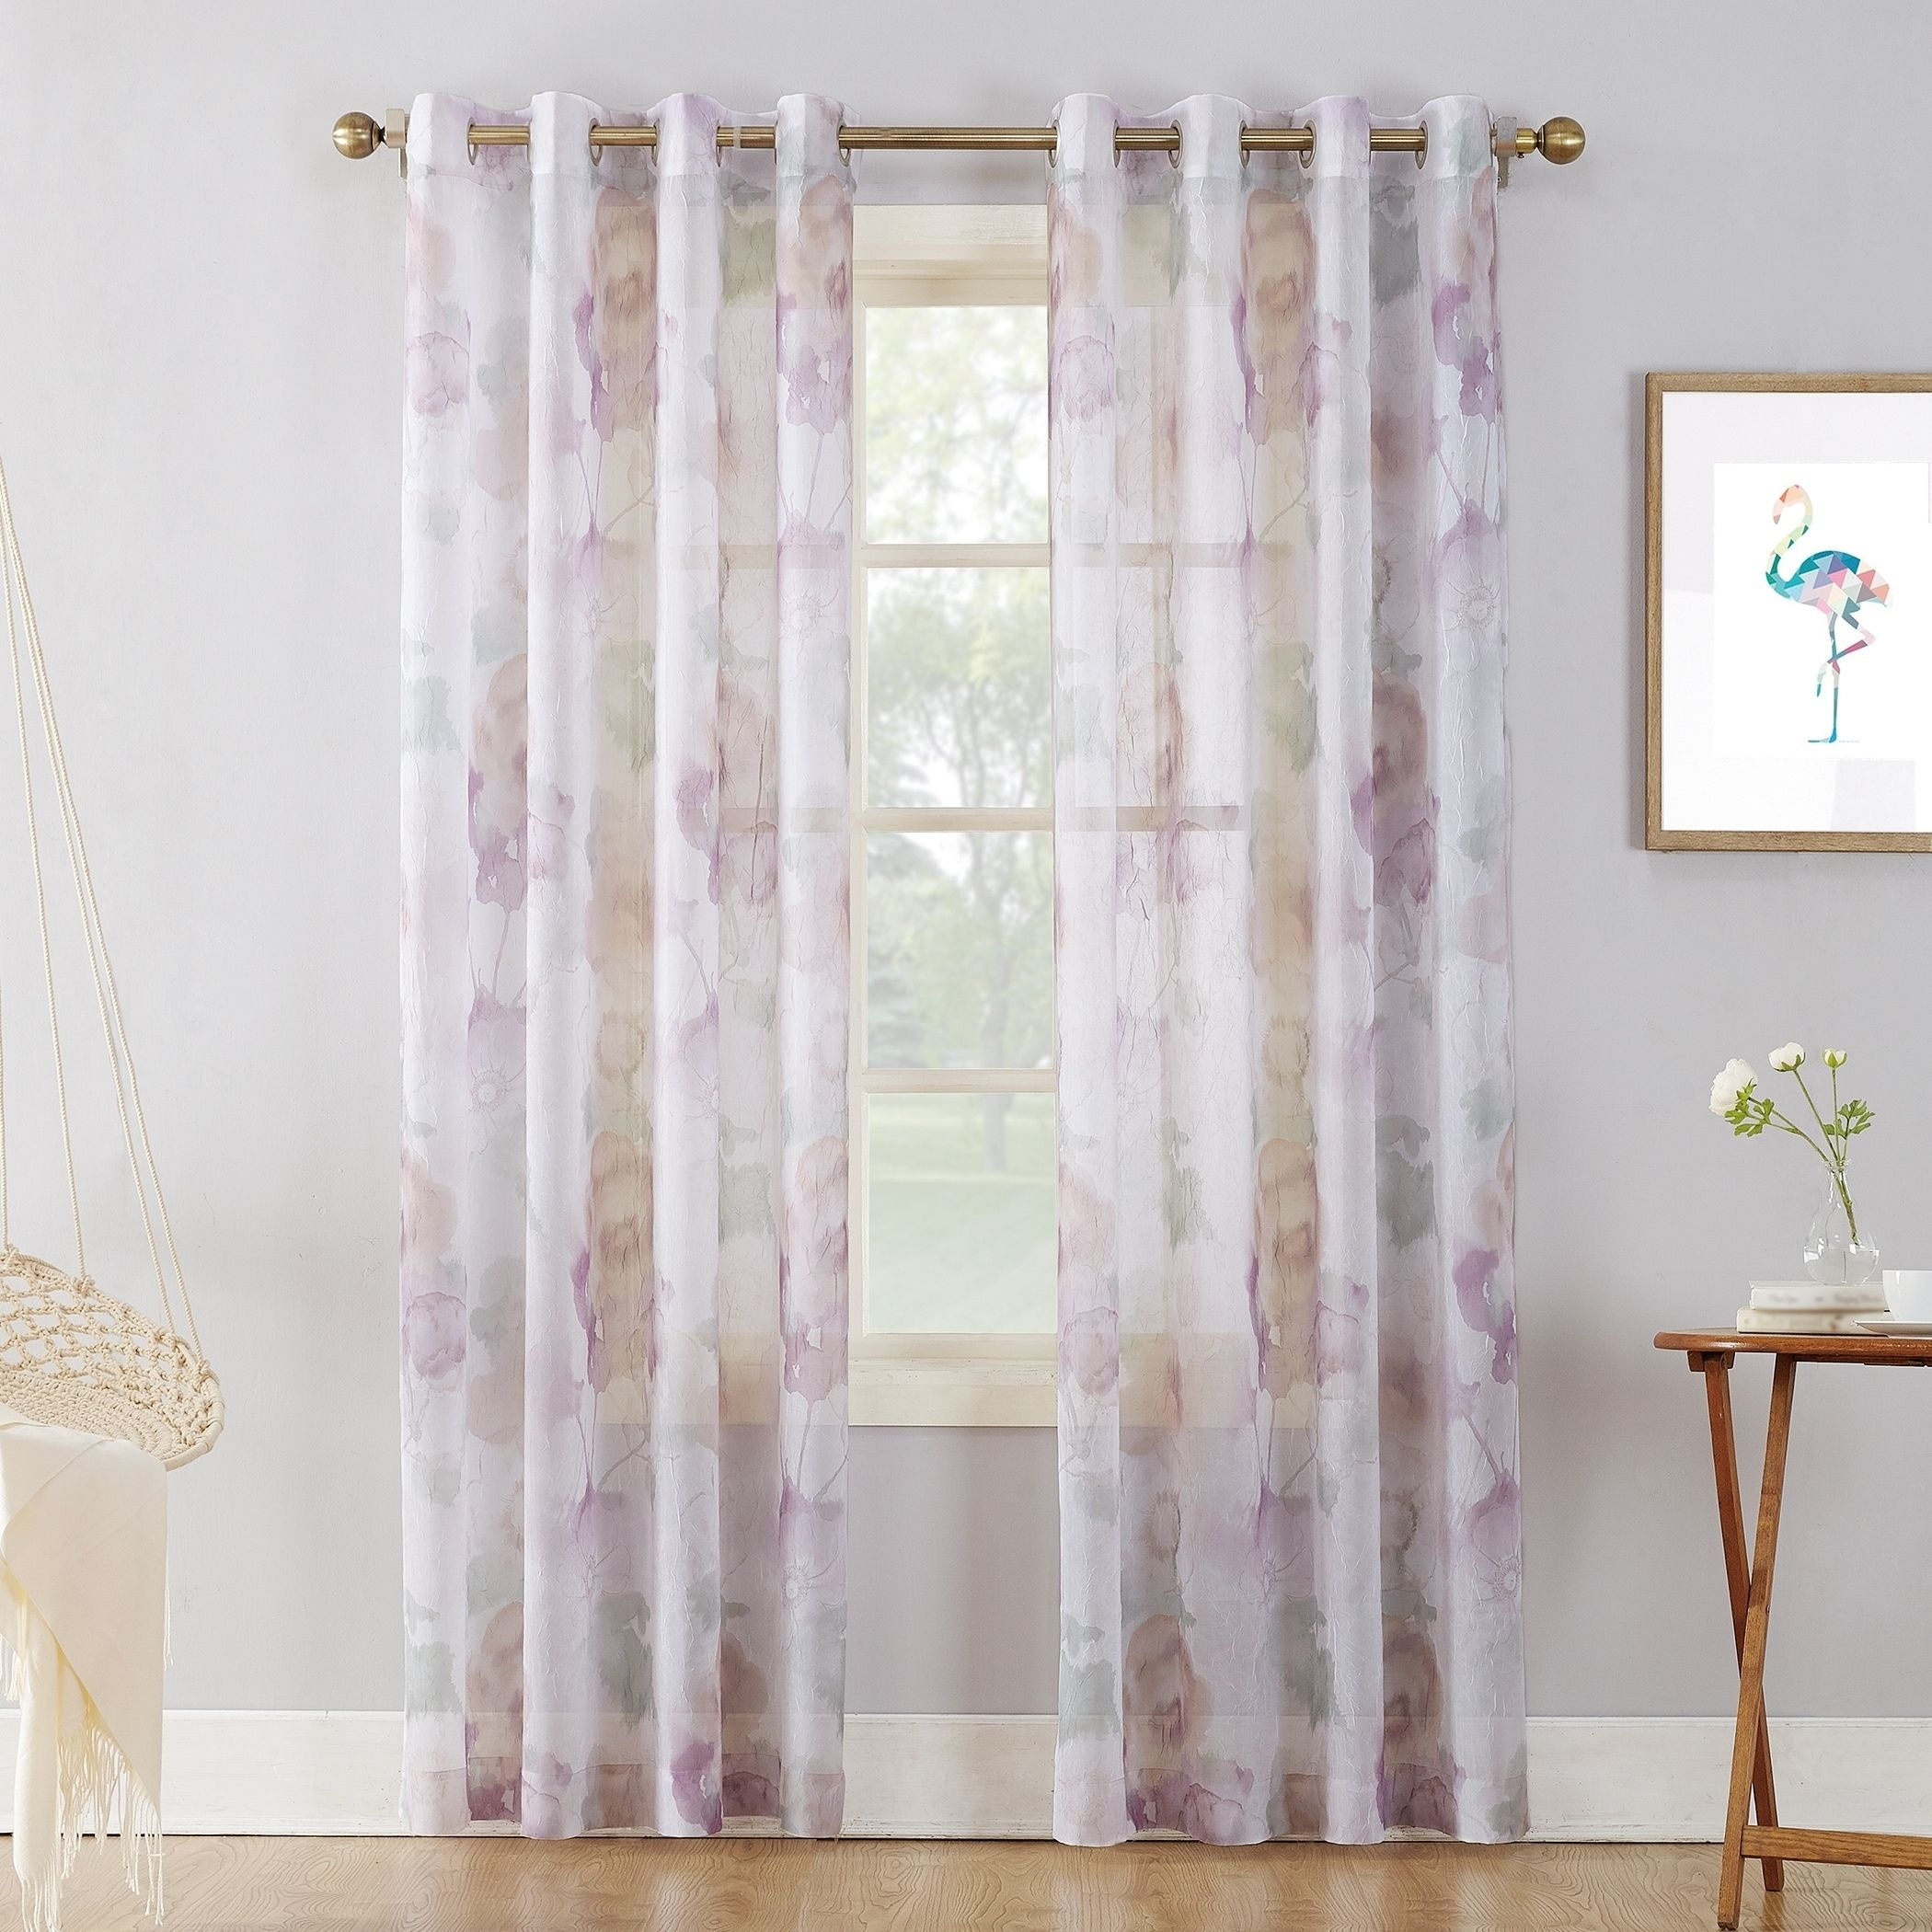 prodigious Textured Sheer Curtains Part - 13: 918 Andorra Watercolor Floral Print On Textured Sheer Curtain Panel (51 x 84